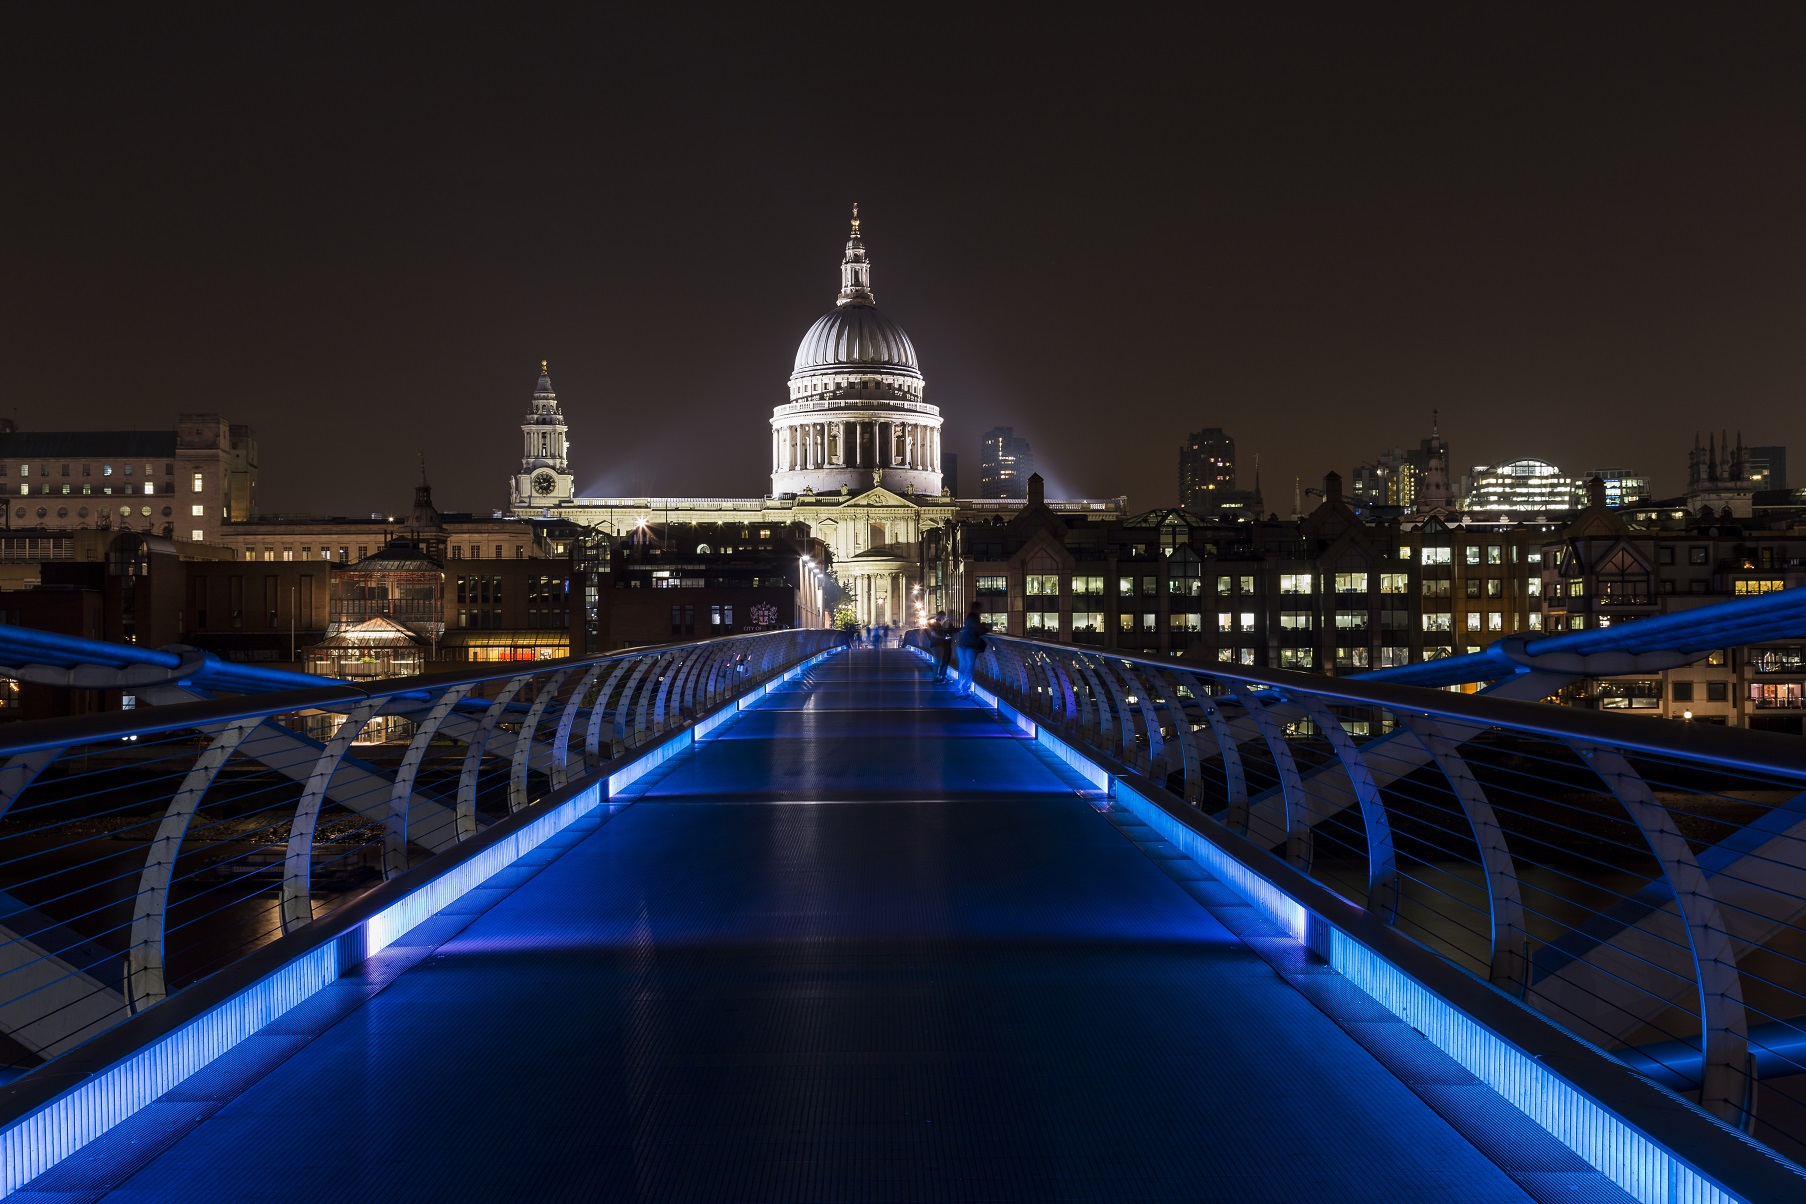 Londra: Millenium Bridge e Saint Paul...